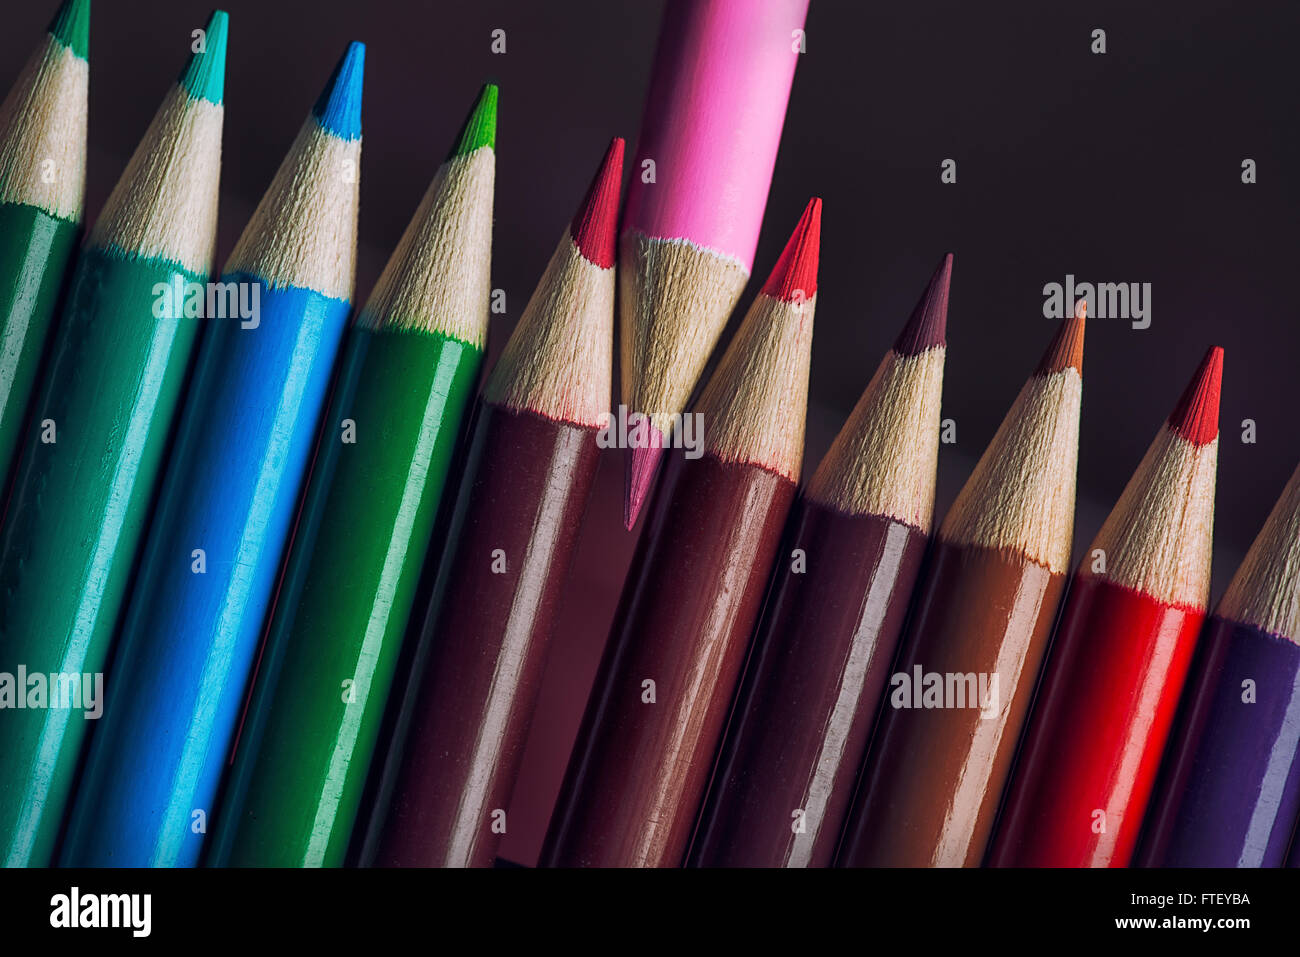 Colored pencils in various angles - Stock Image